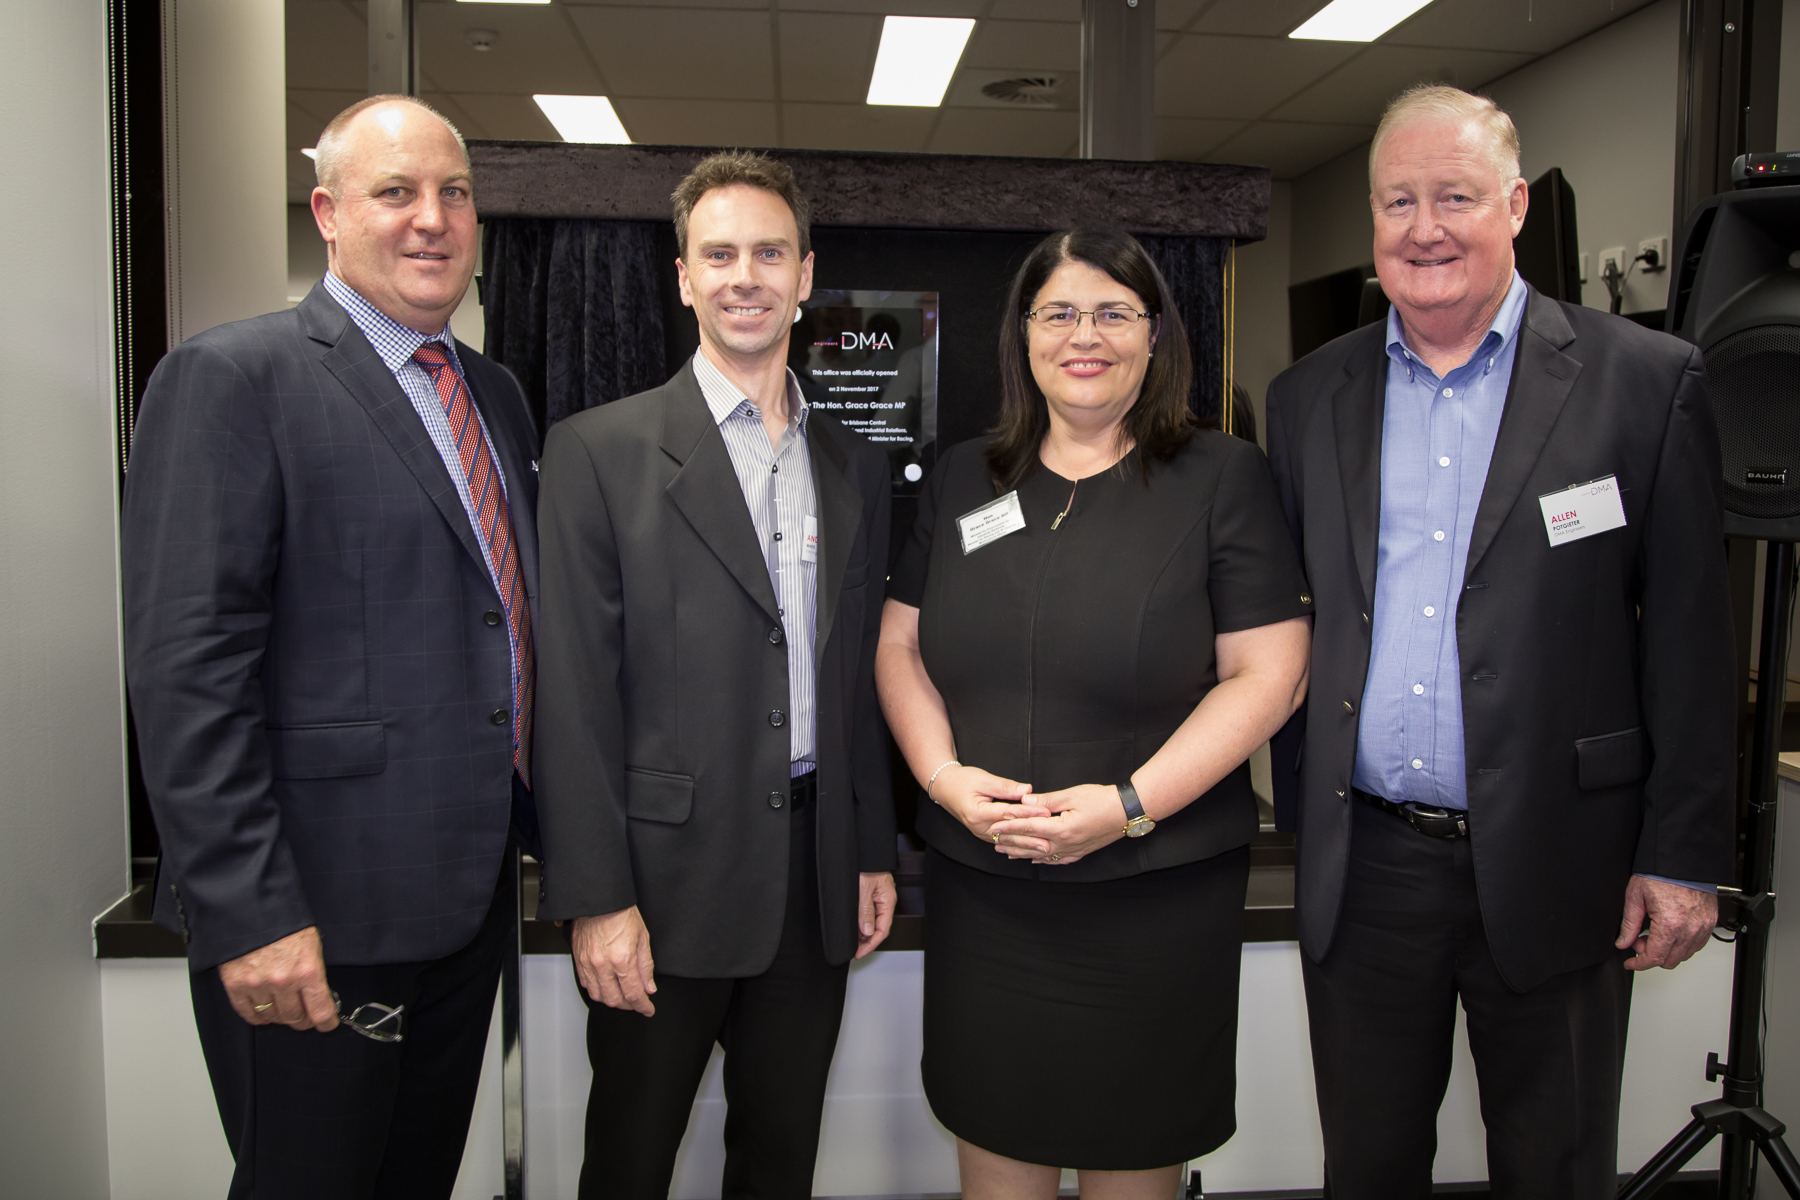 Hon. Grace Grace MP opens new Spring Hill office for DMA Engineers